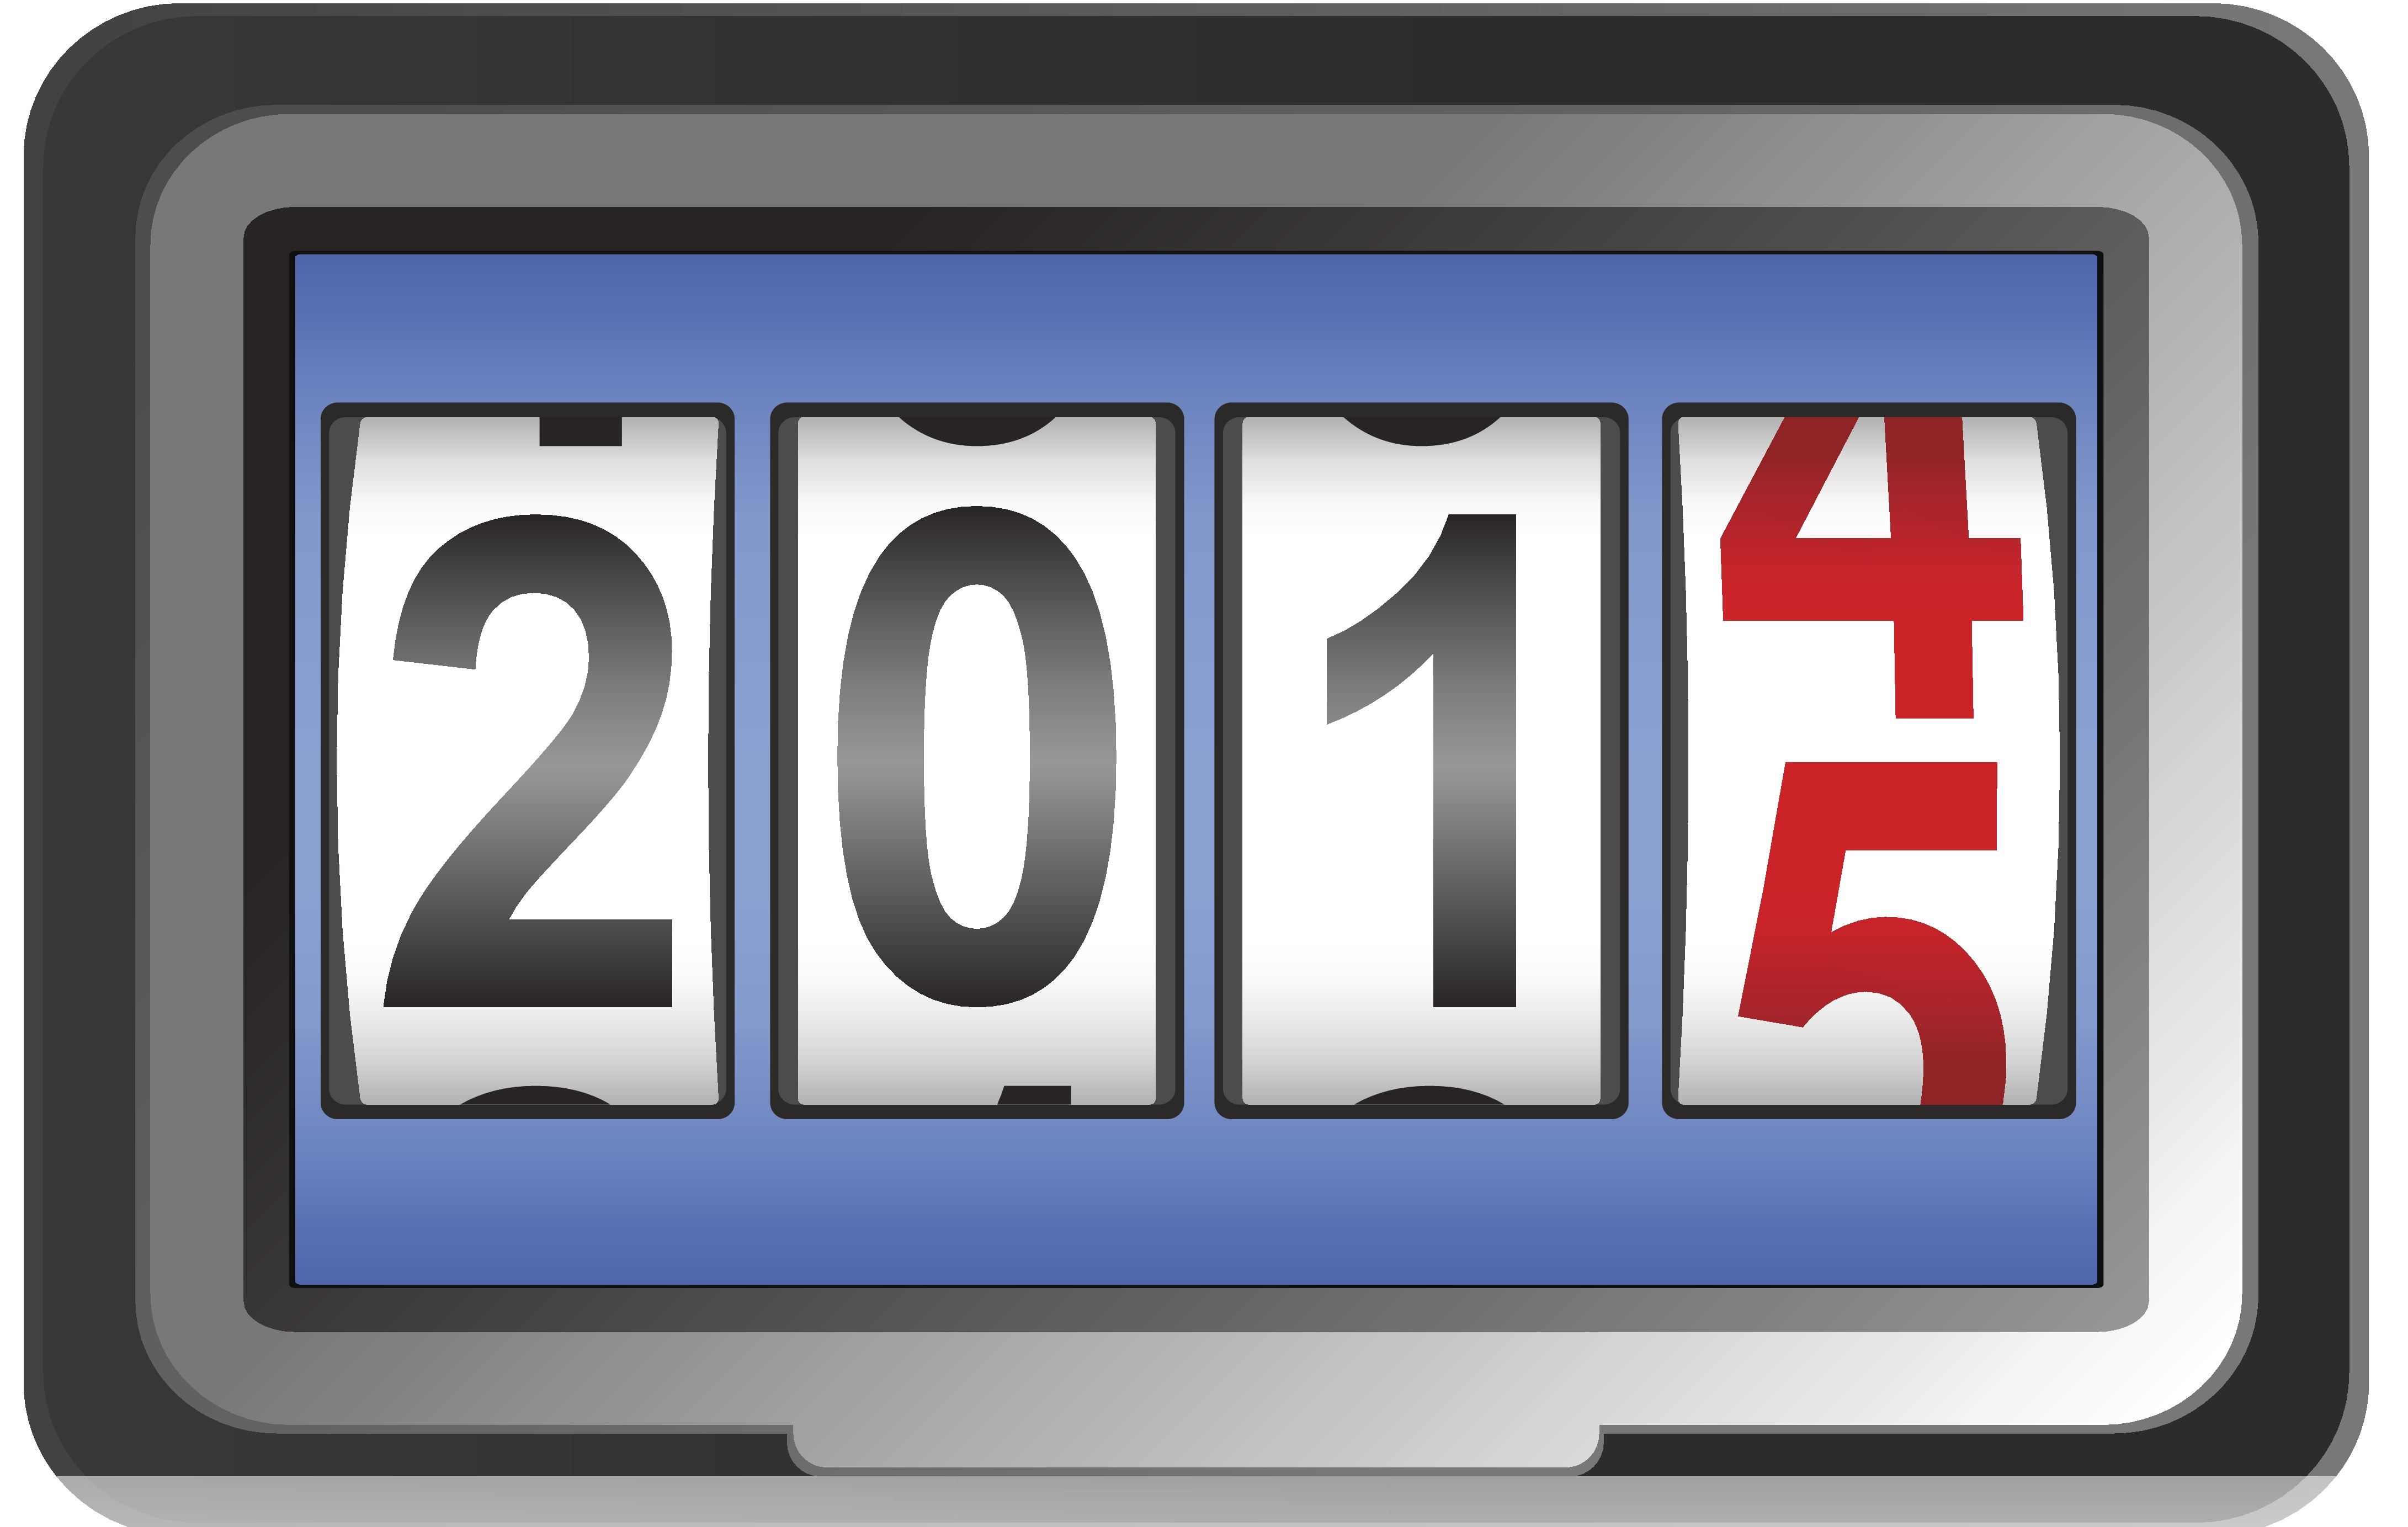 Wrapping up 2014